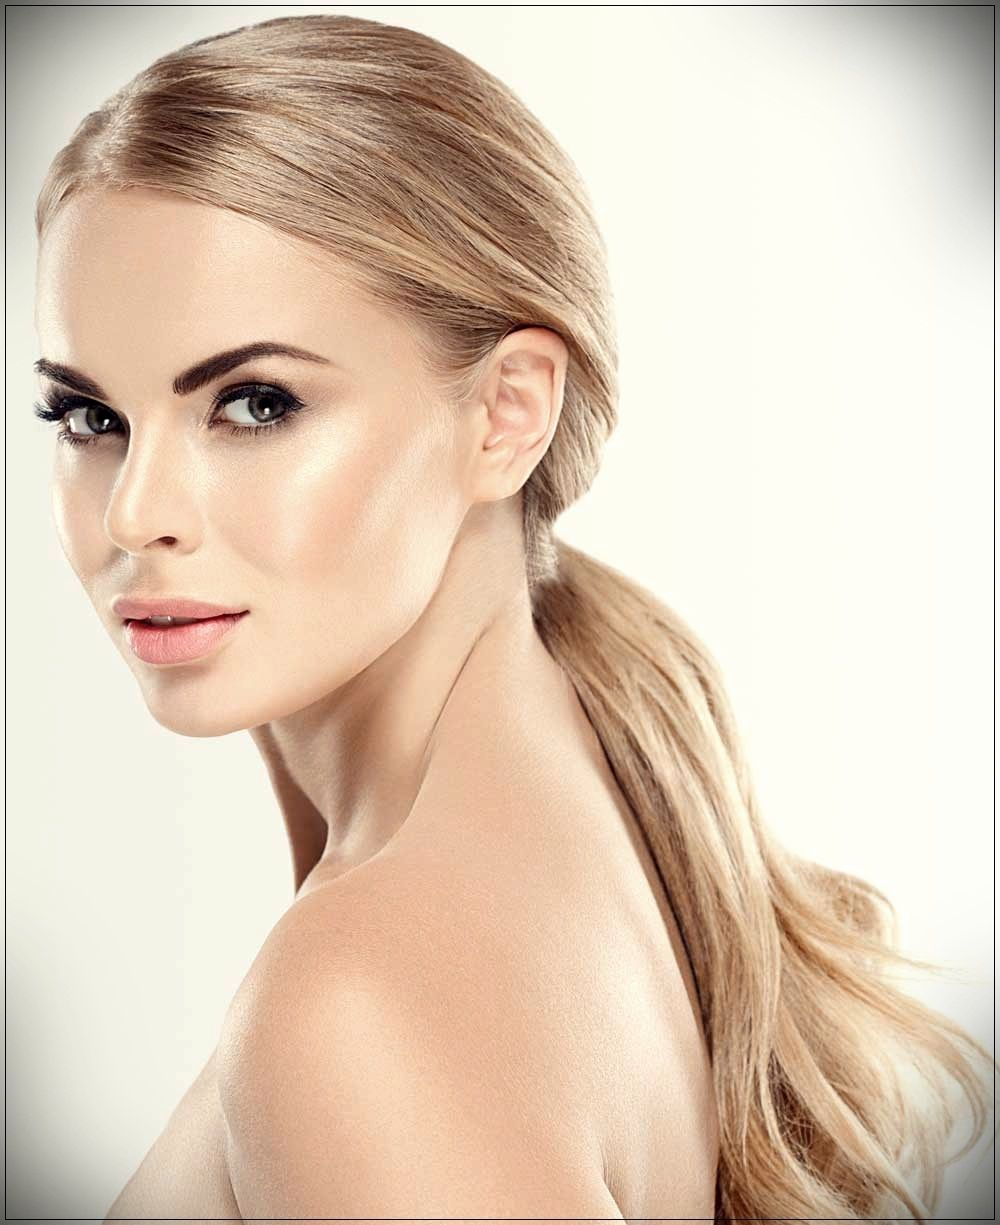 hairstyles for long hair easy ideas and fastshort and